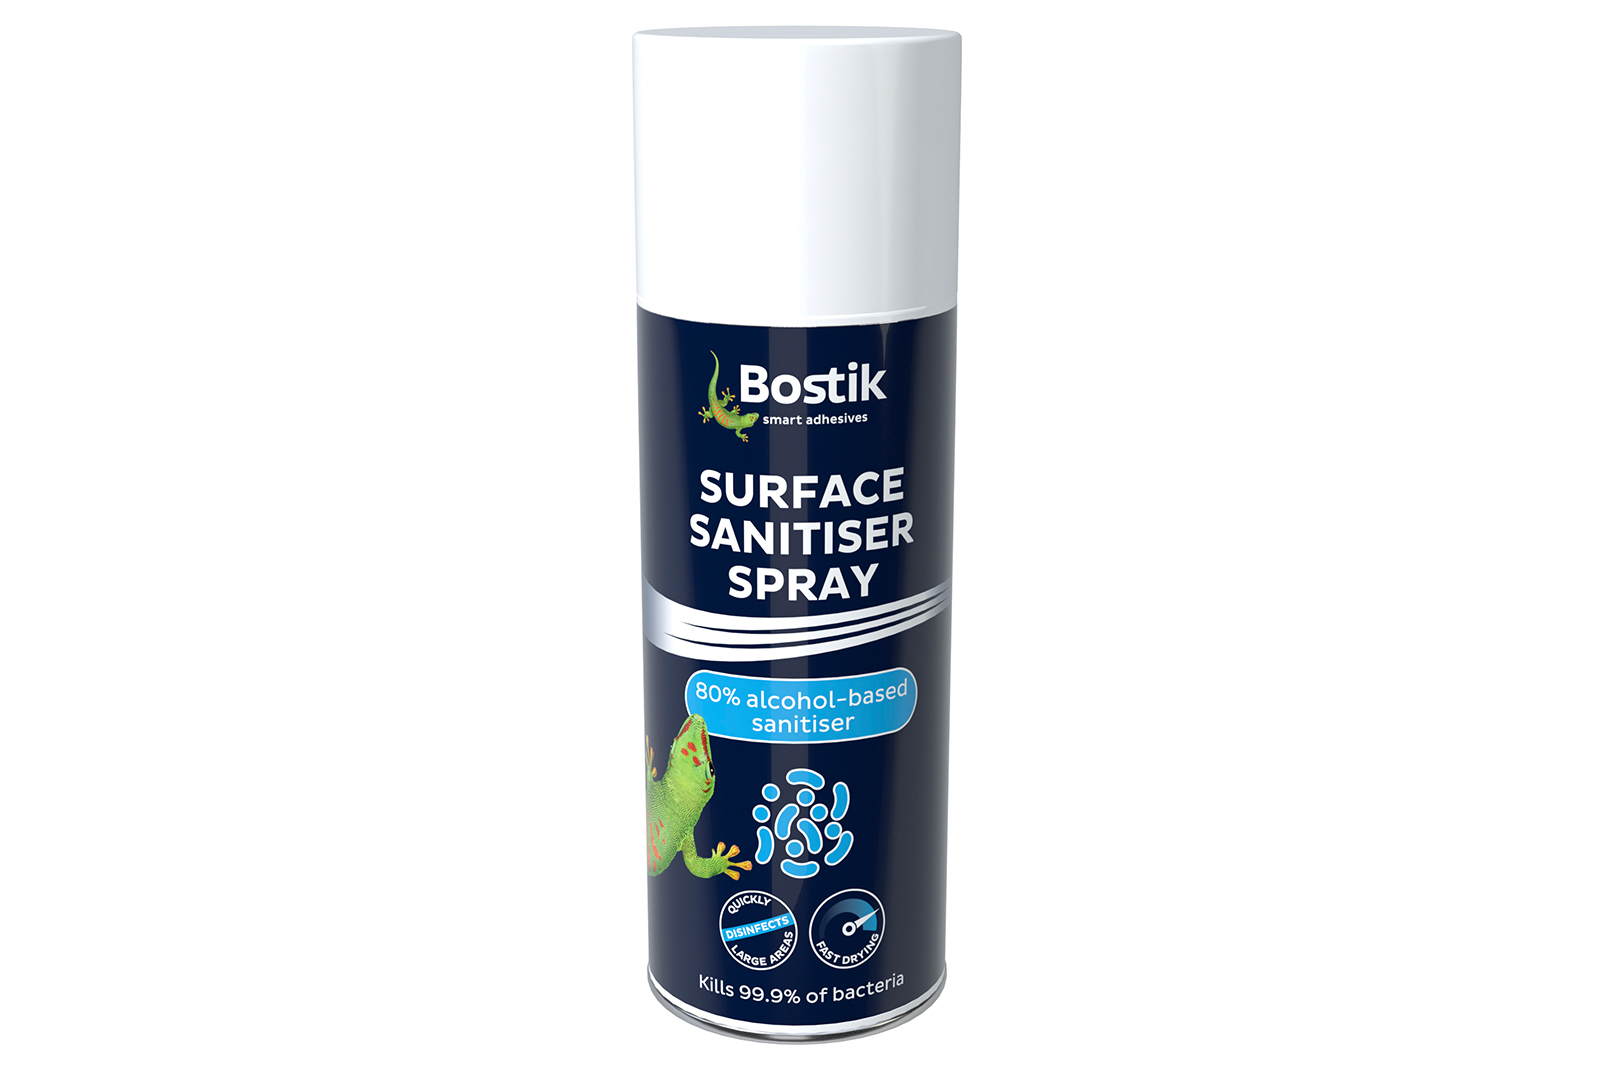 2×12 cans of Bostik surface sanitiser spray to give away